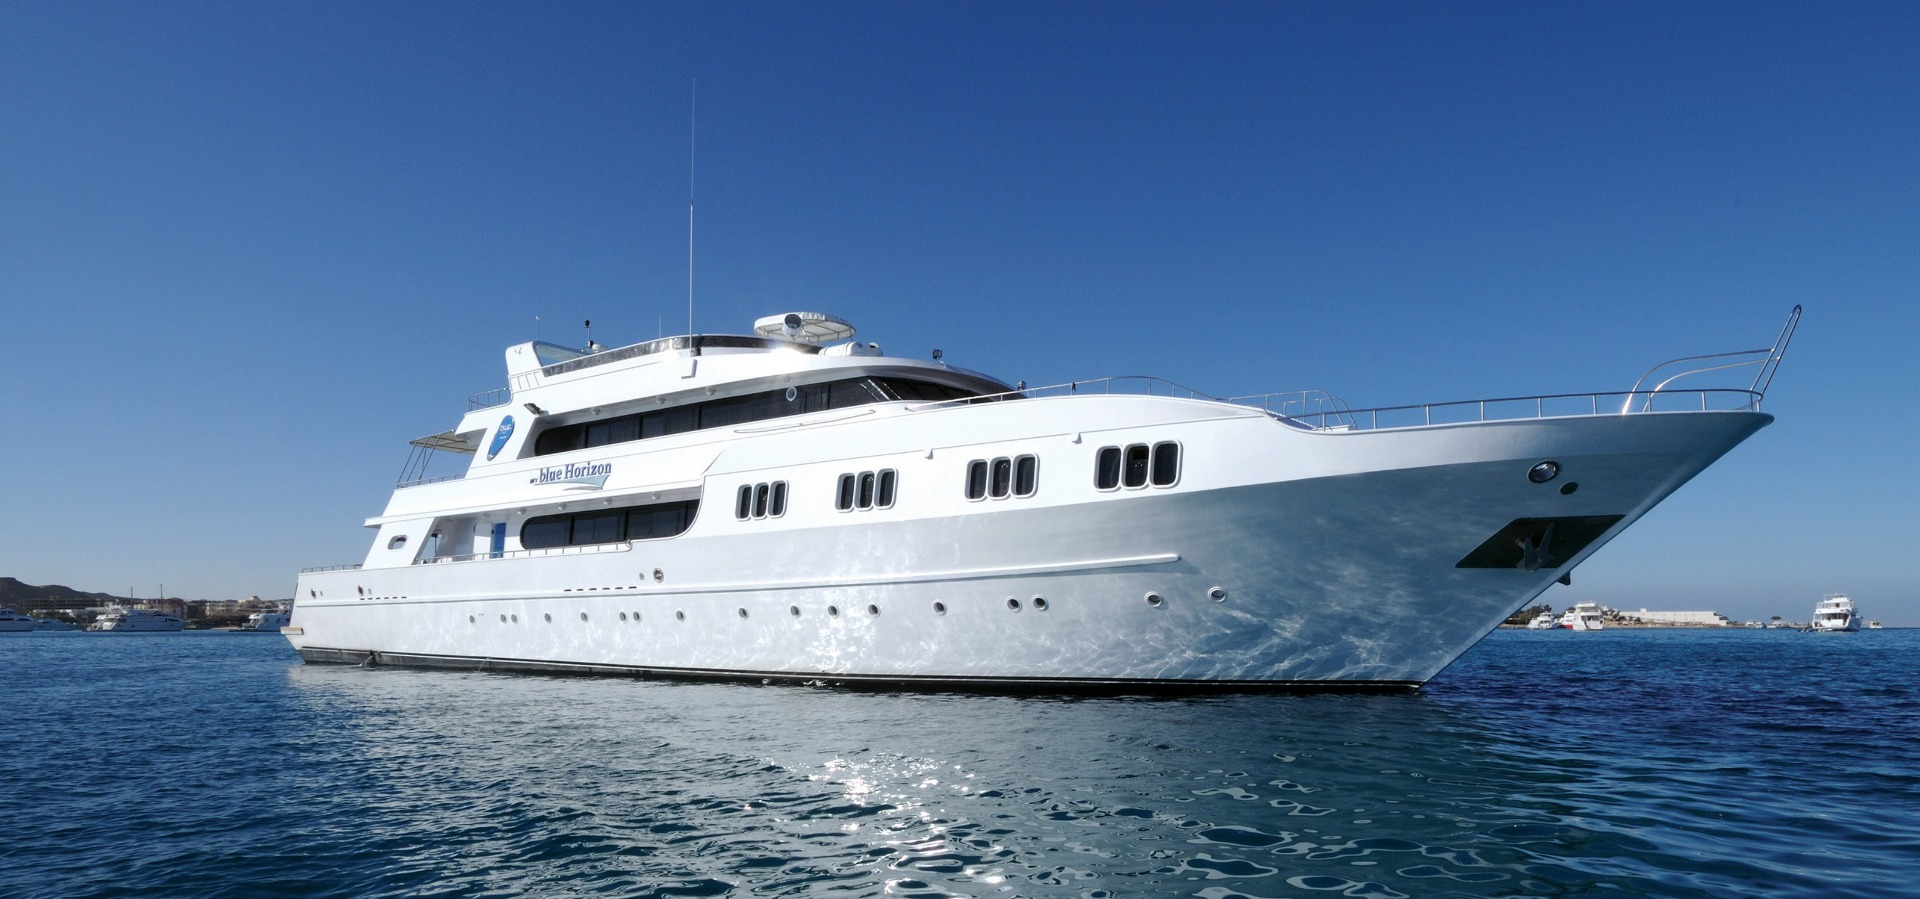 M/Y blue Horizon liveaboard diving vessel anchored in the Red Sea